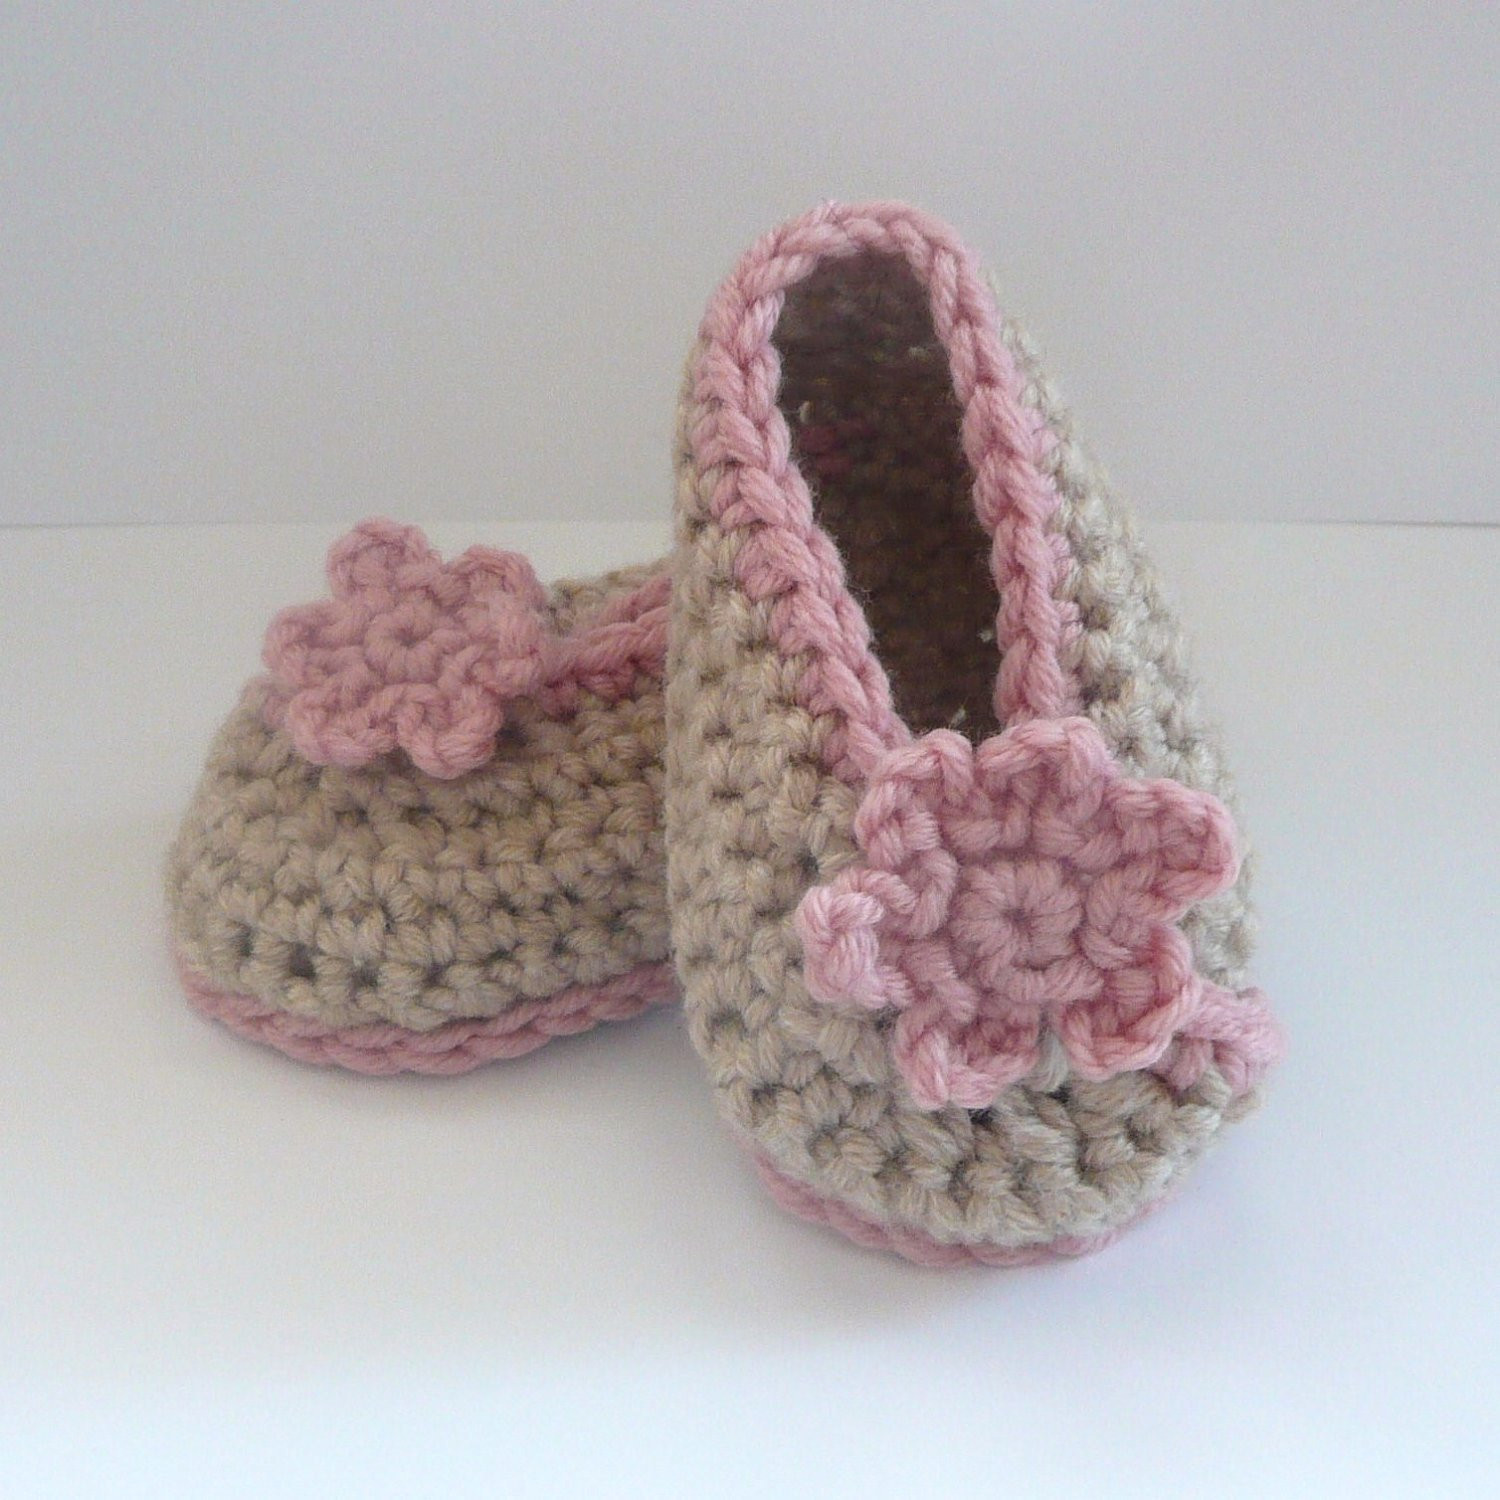 Crochet Baby Sneakers Elegant Crochet Pattern Baby Booties Crossover Baby Shoes Instant Of Superb 49 Images Crochet Baby Sneakers